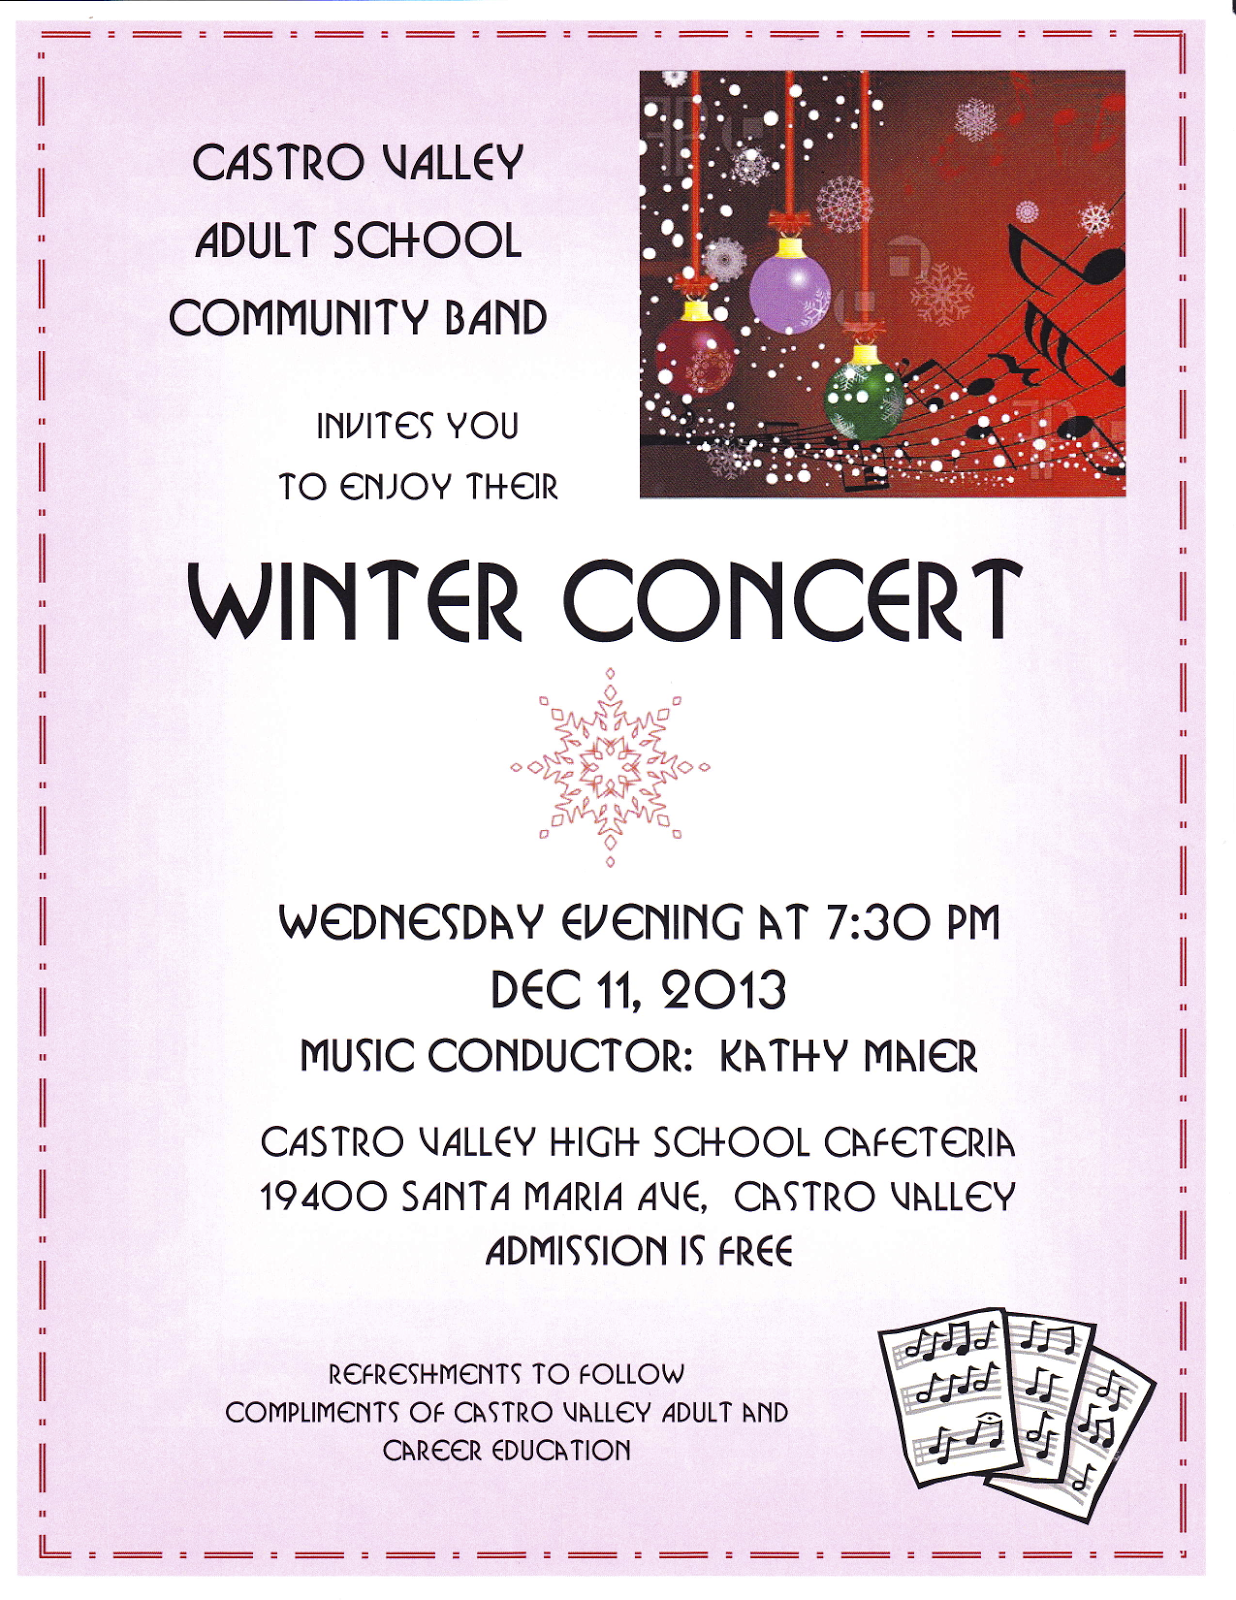 castro valley community band flyer for our concert please note that we are playing in the castro valley high school cafeteria and not in the center for the arts